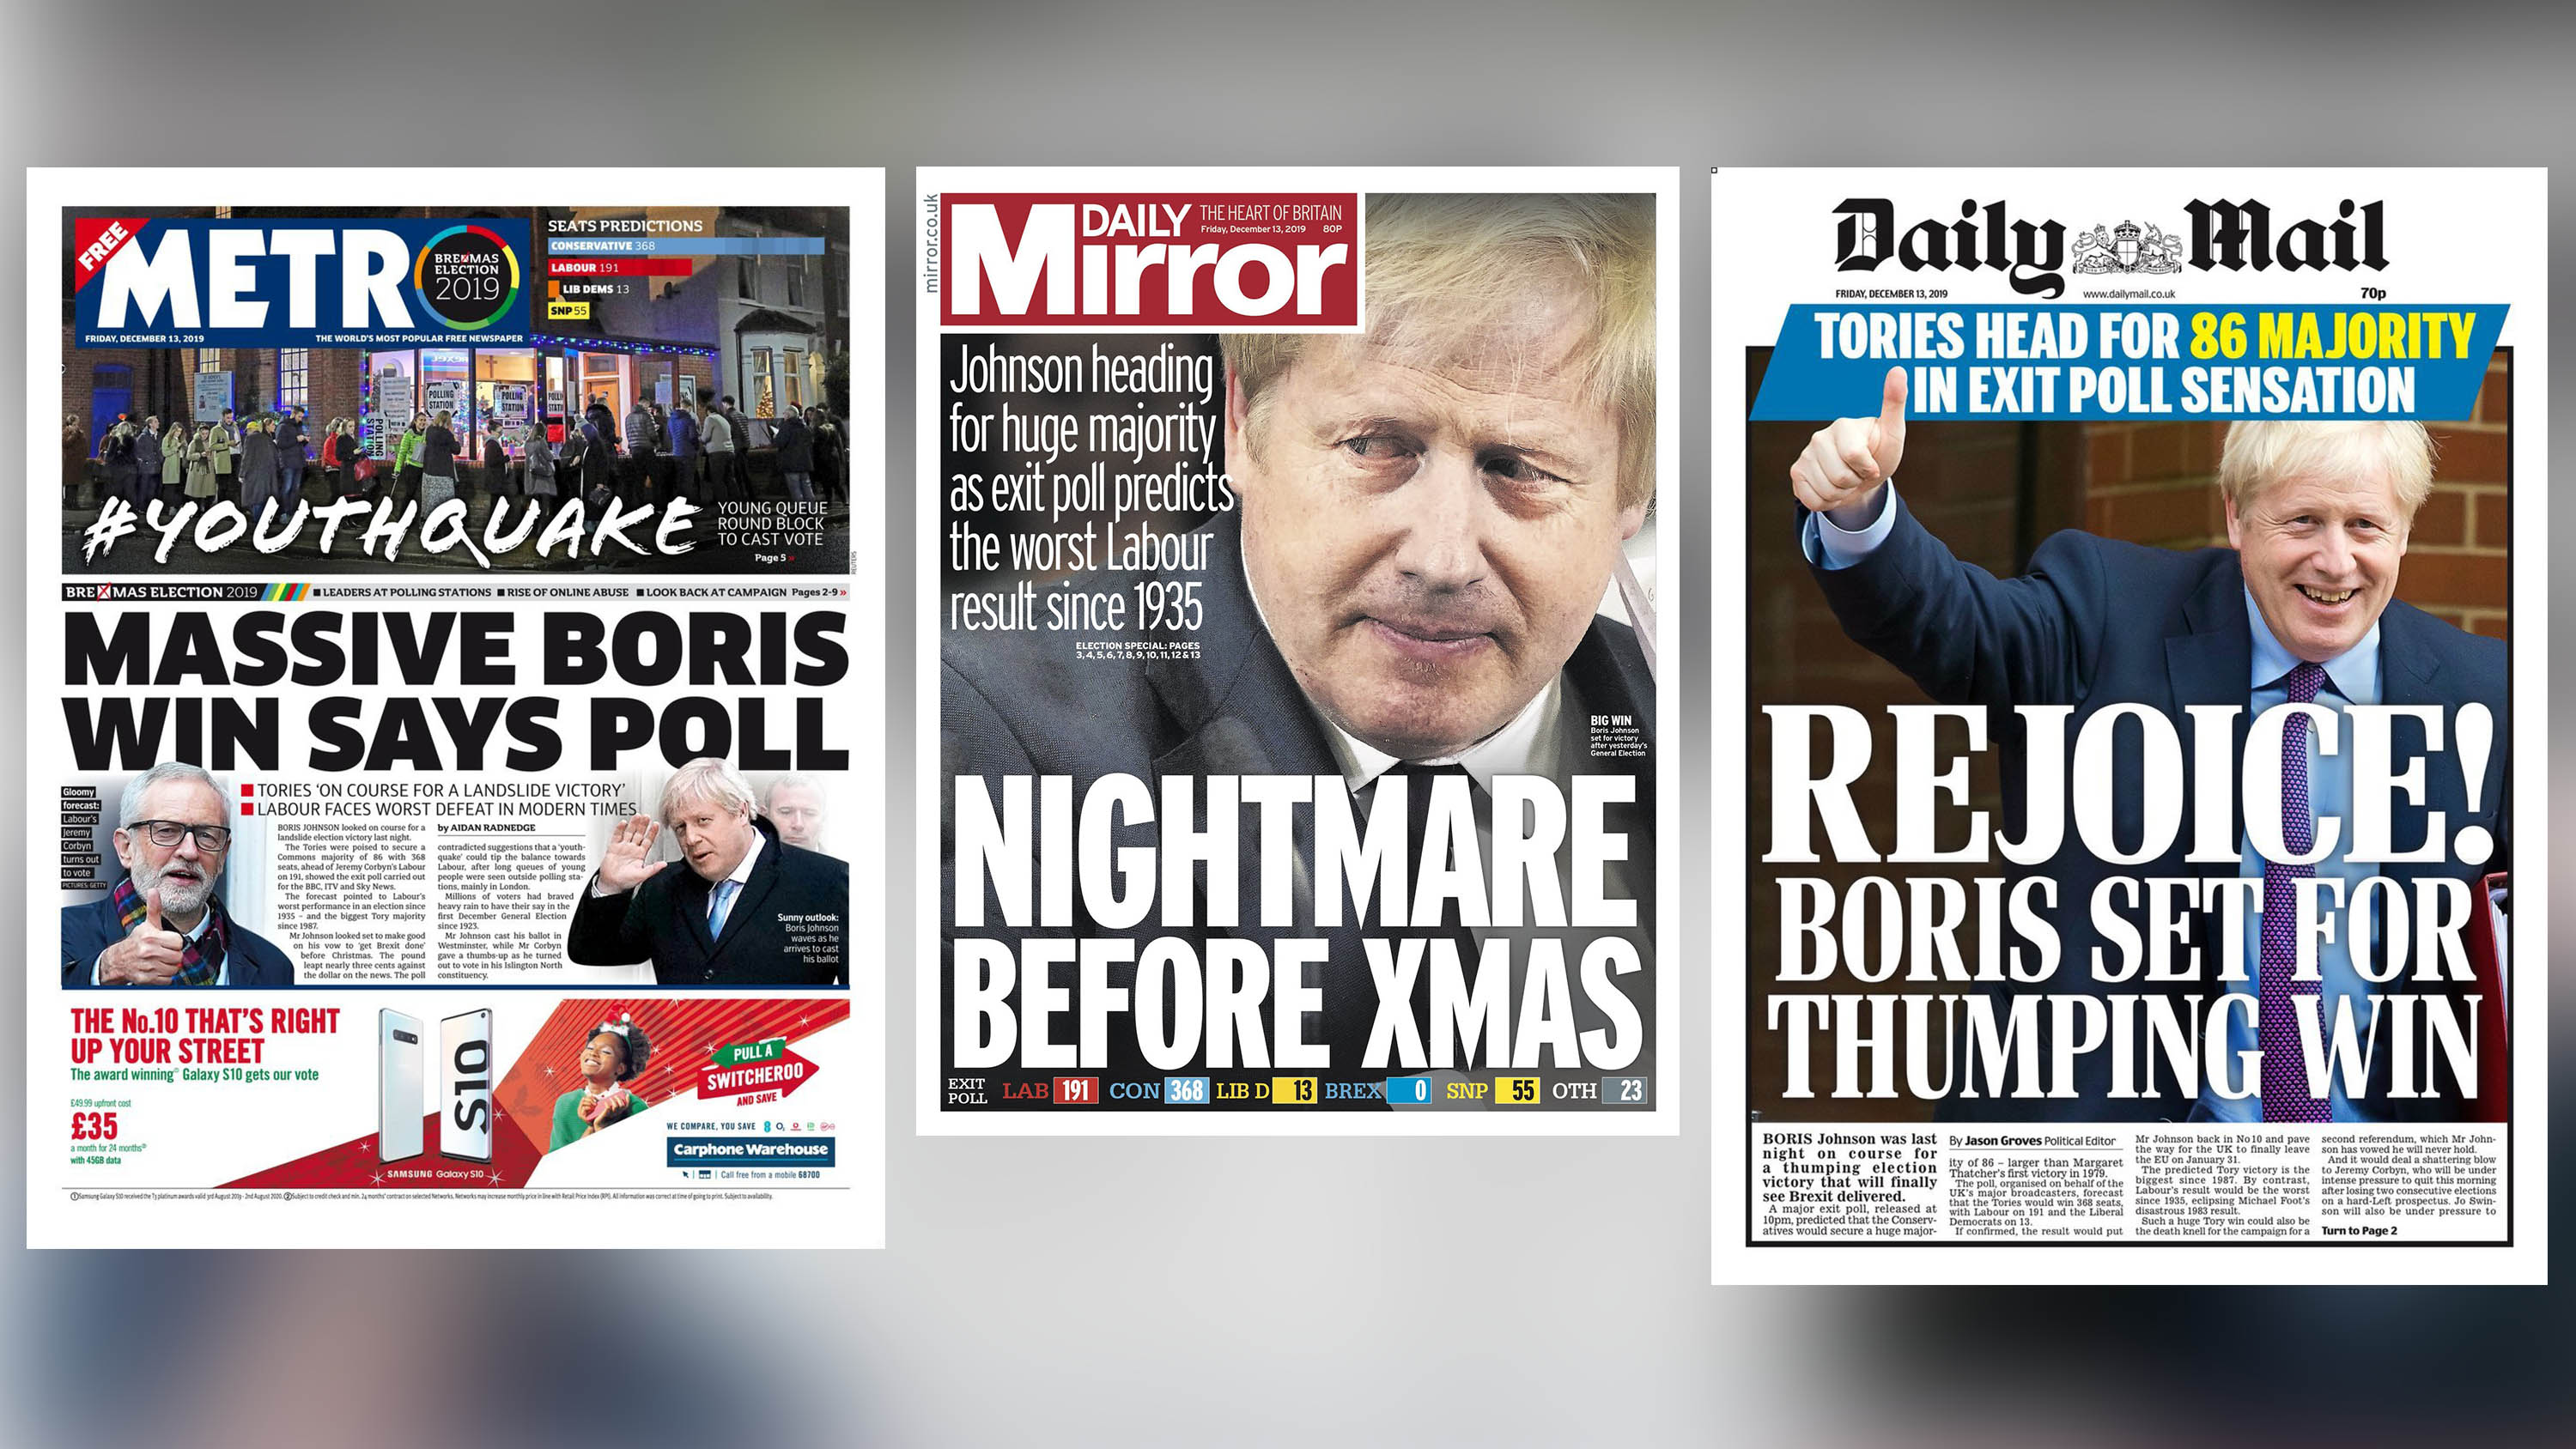 Metro/Daily Mirror/Daily Mail